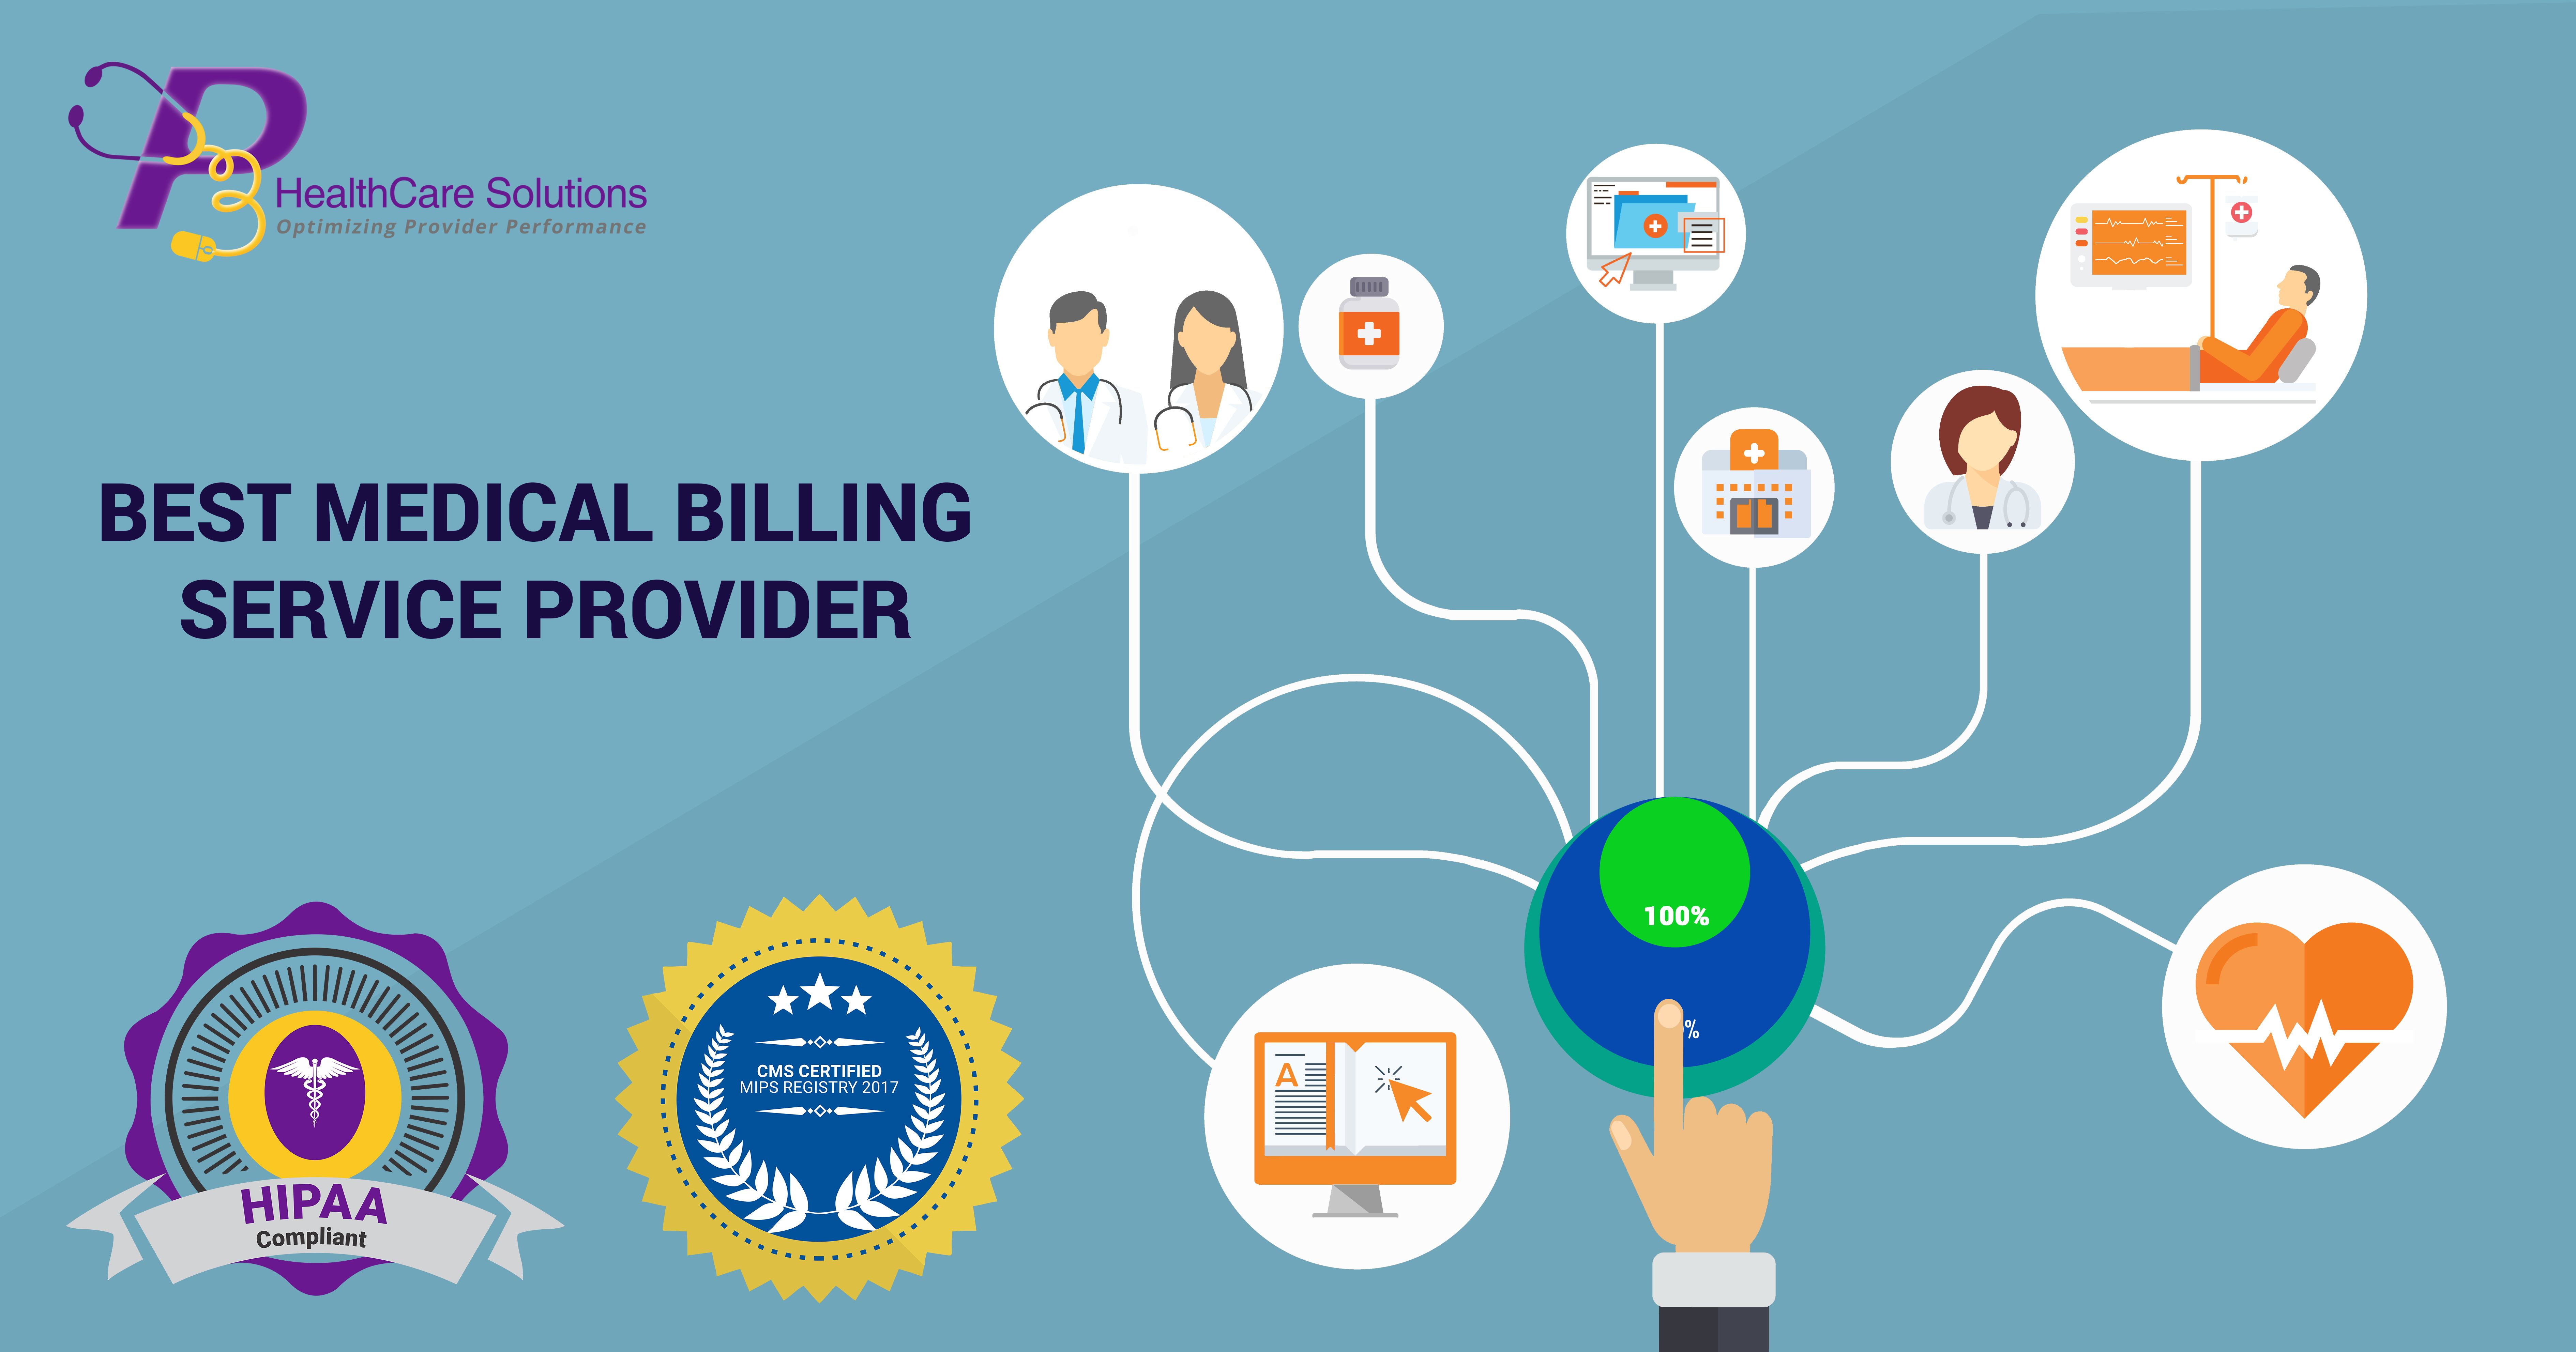 Pin By P3 Healthcare Solutions On Medical Billing Services Board